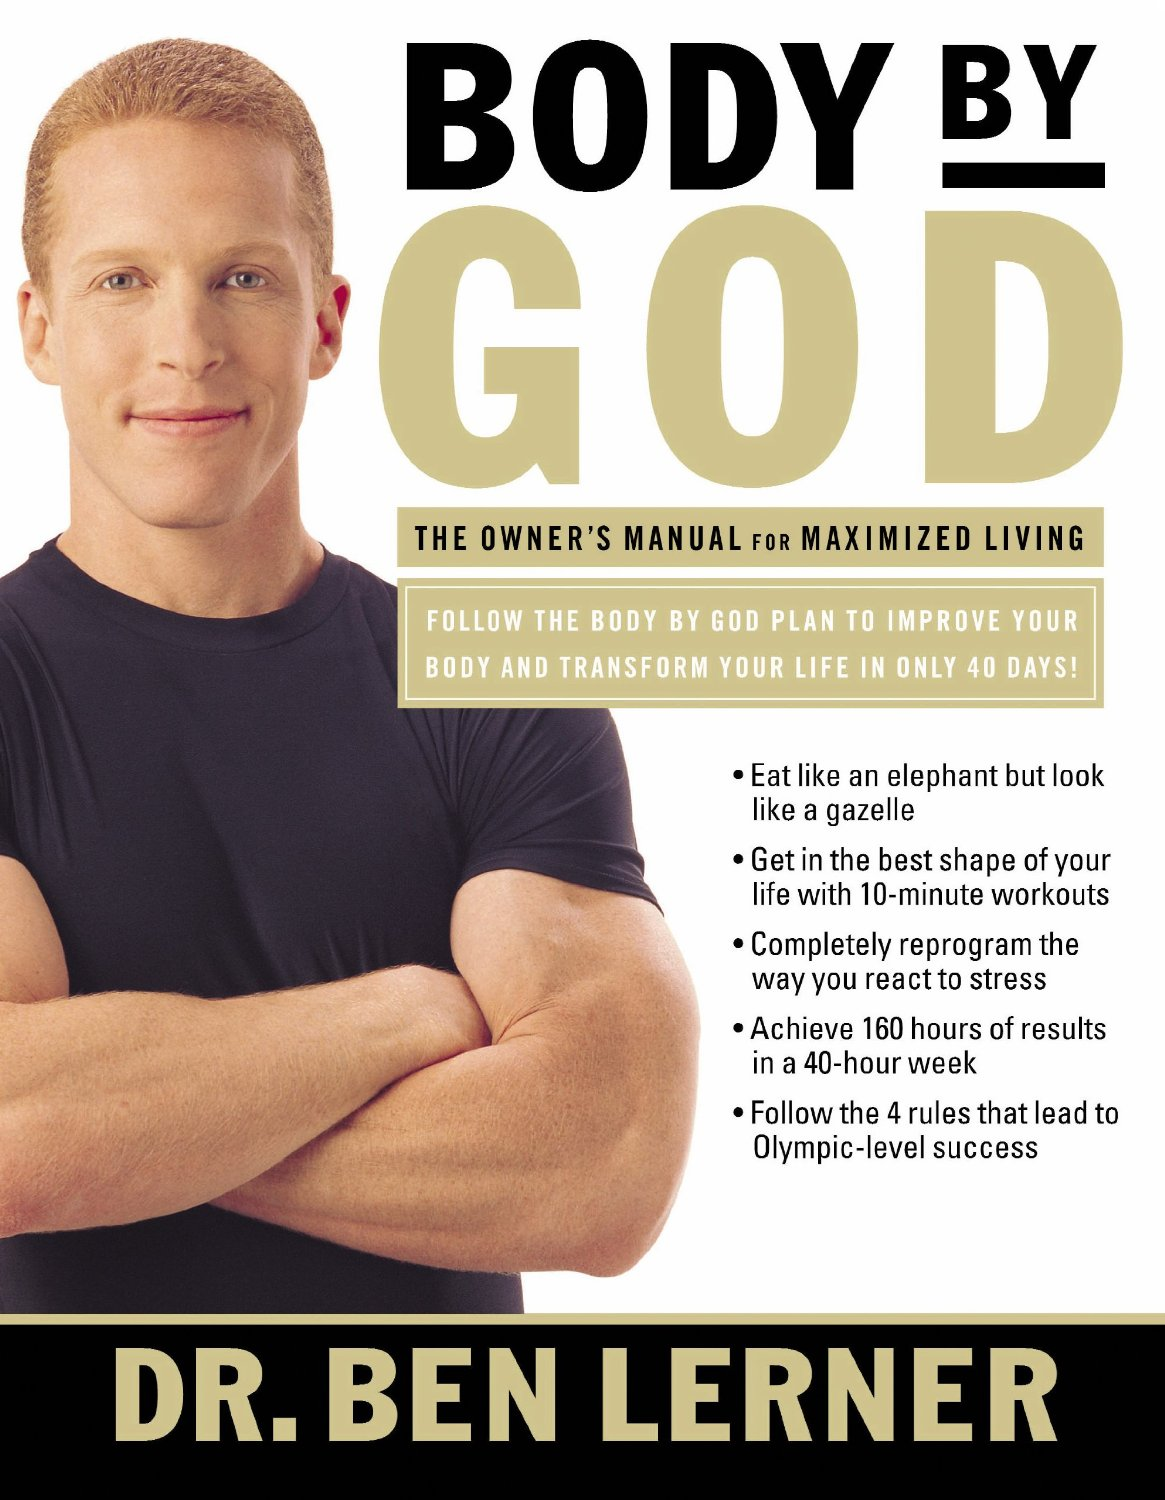 Body by God: The Owner's Manual for Maximized Living free download